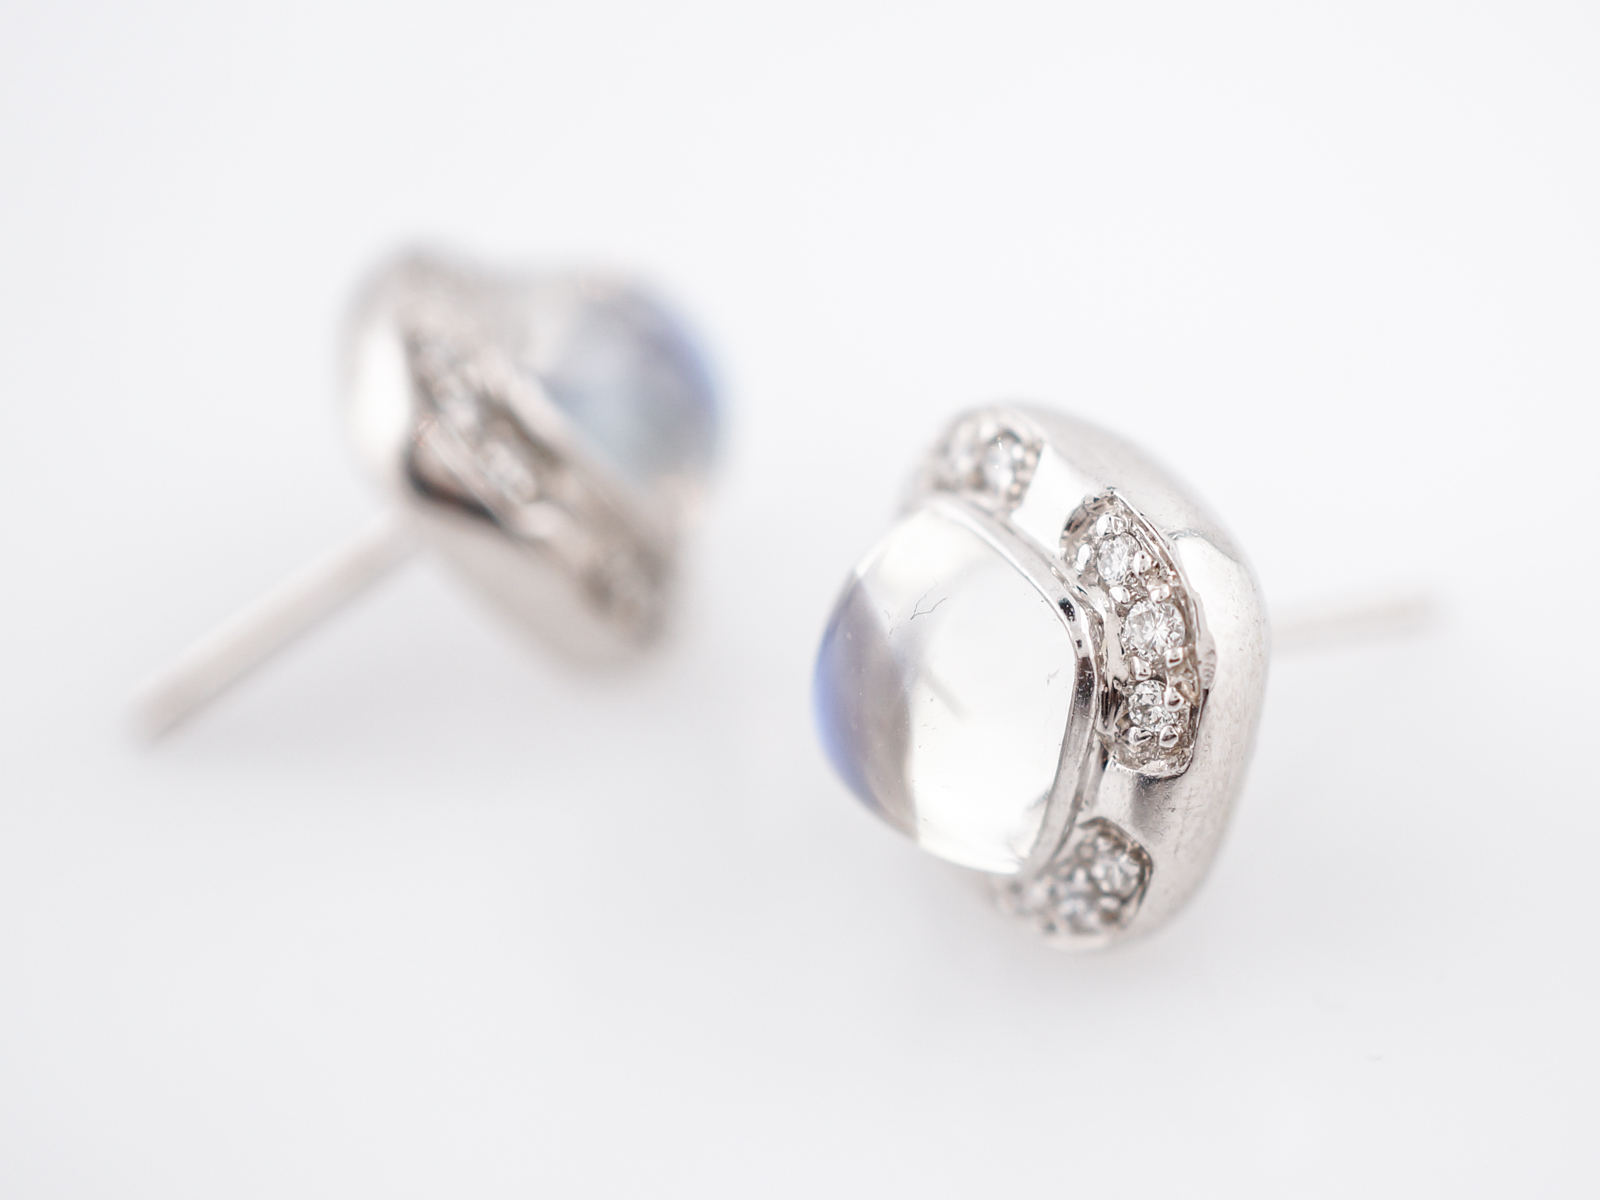 Earrings Modern 2.5 Sugarloaf Cabochon Cut Moonstones in 14k White Gold-6